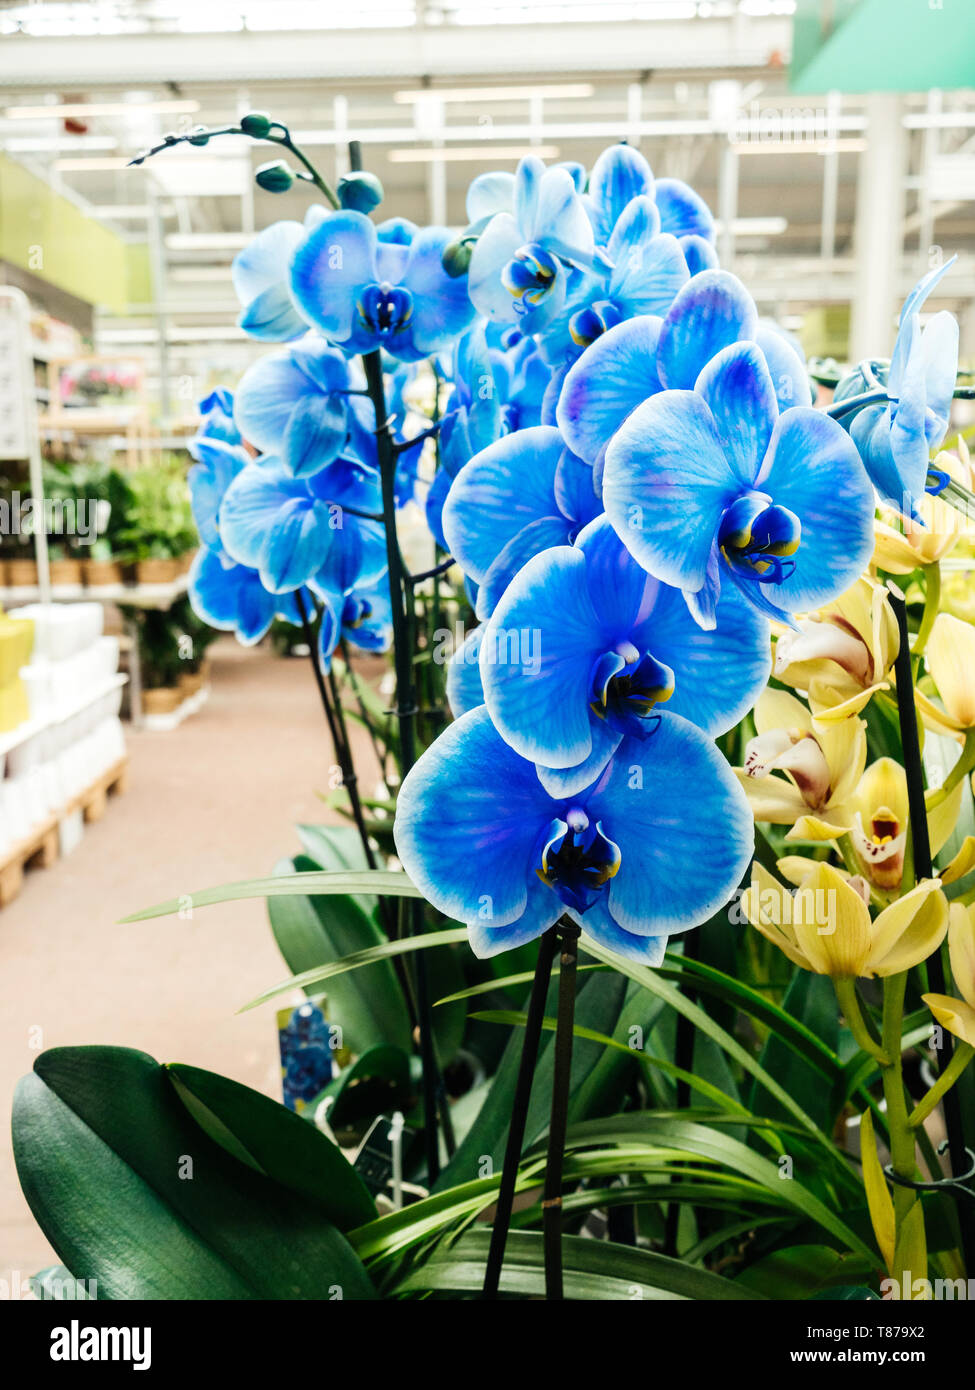 Elegant blue fresh Orchid flower from the Orchidaceae family close-up in modern florist store - Stock Image